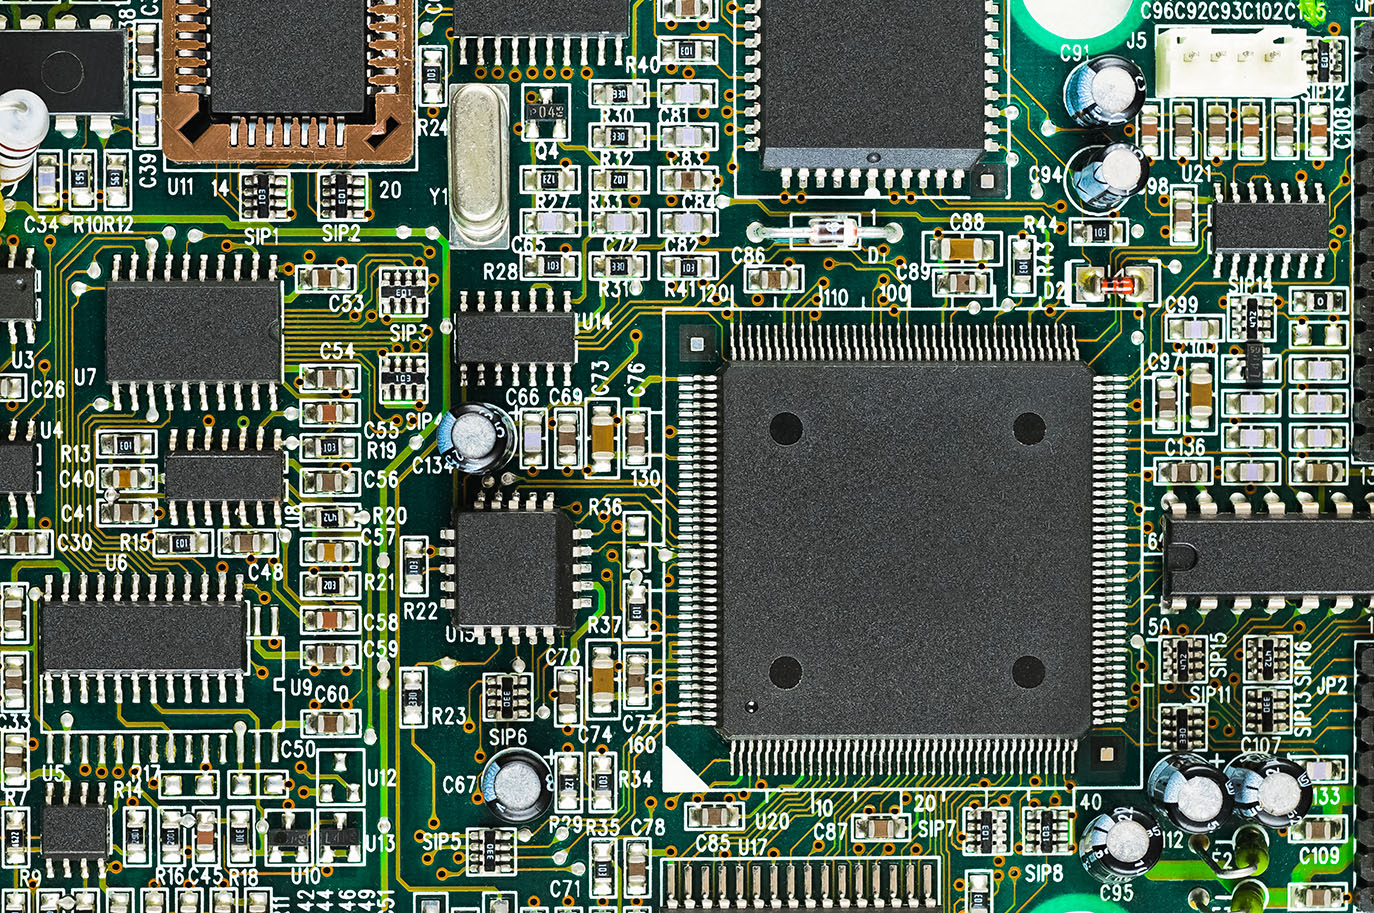 Assembly of a PCB for a Medical Respiratory Application